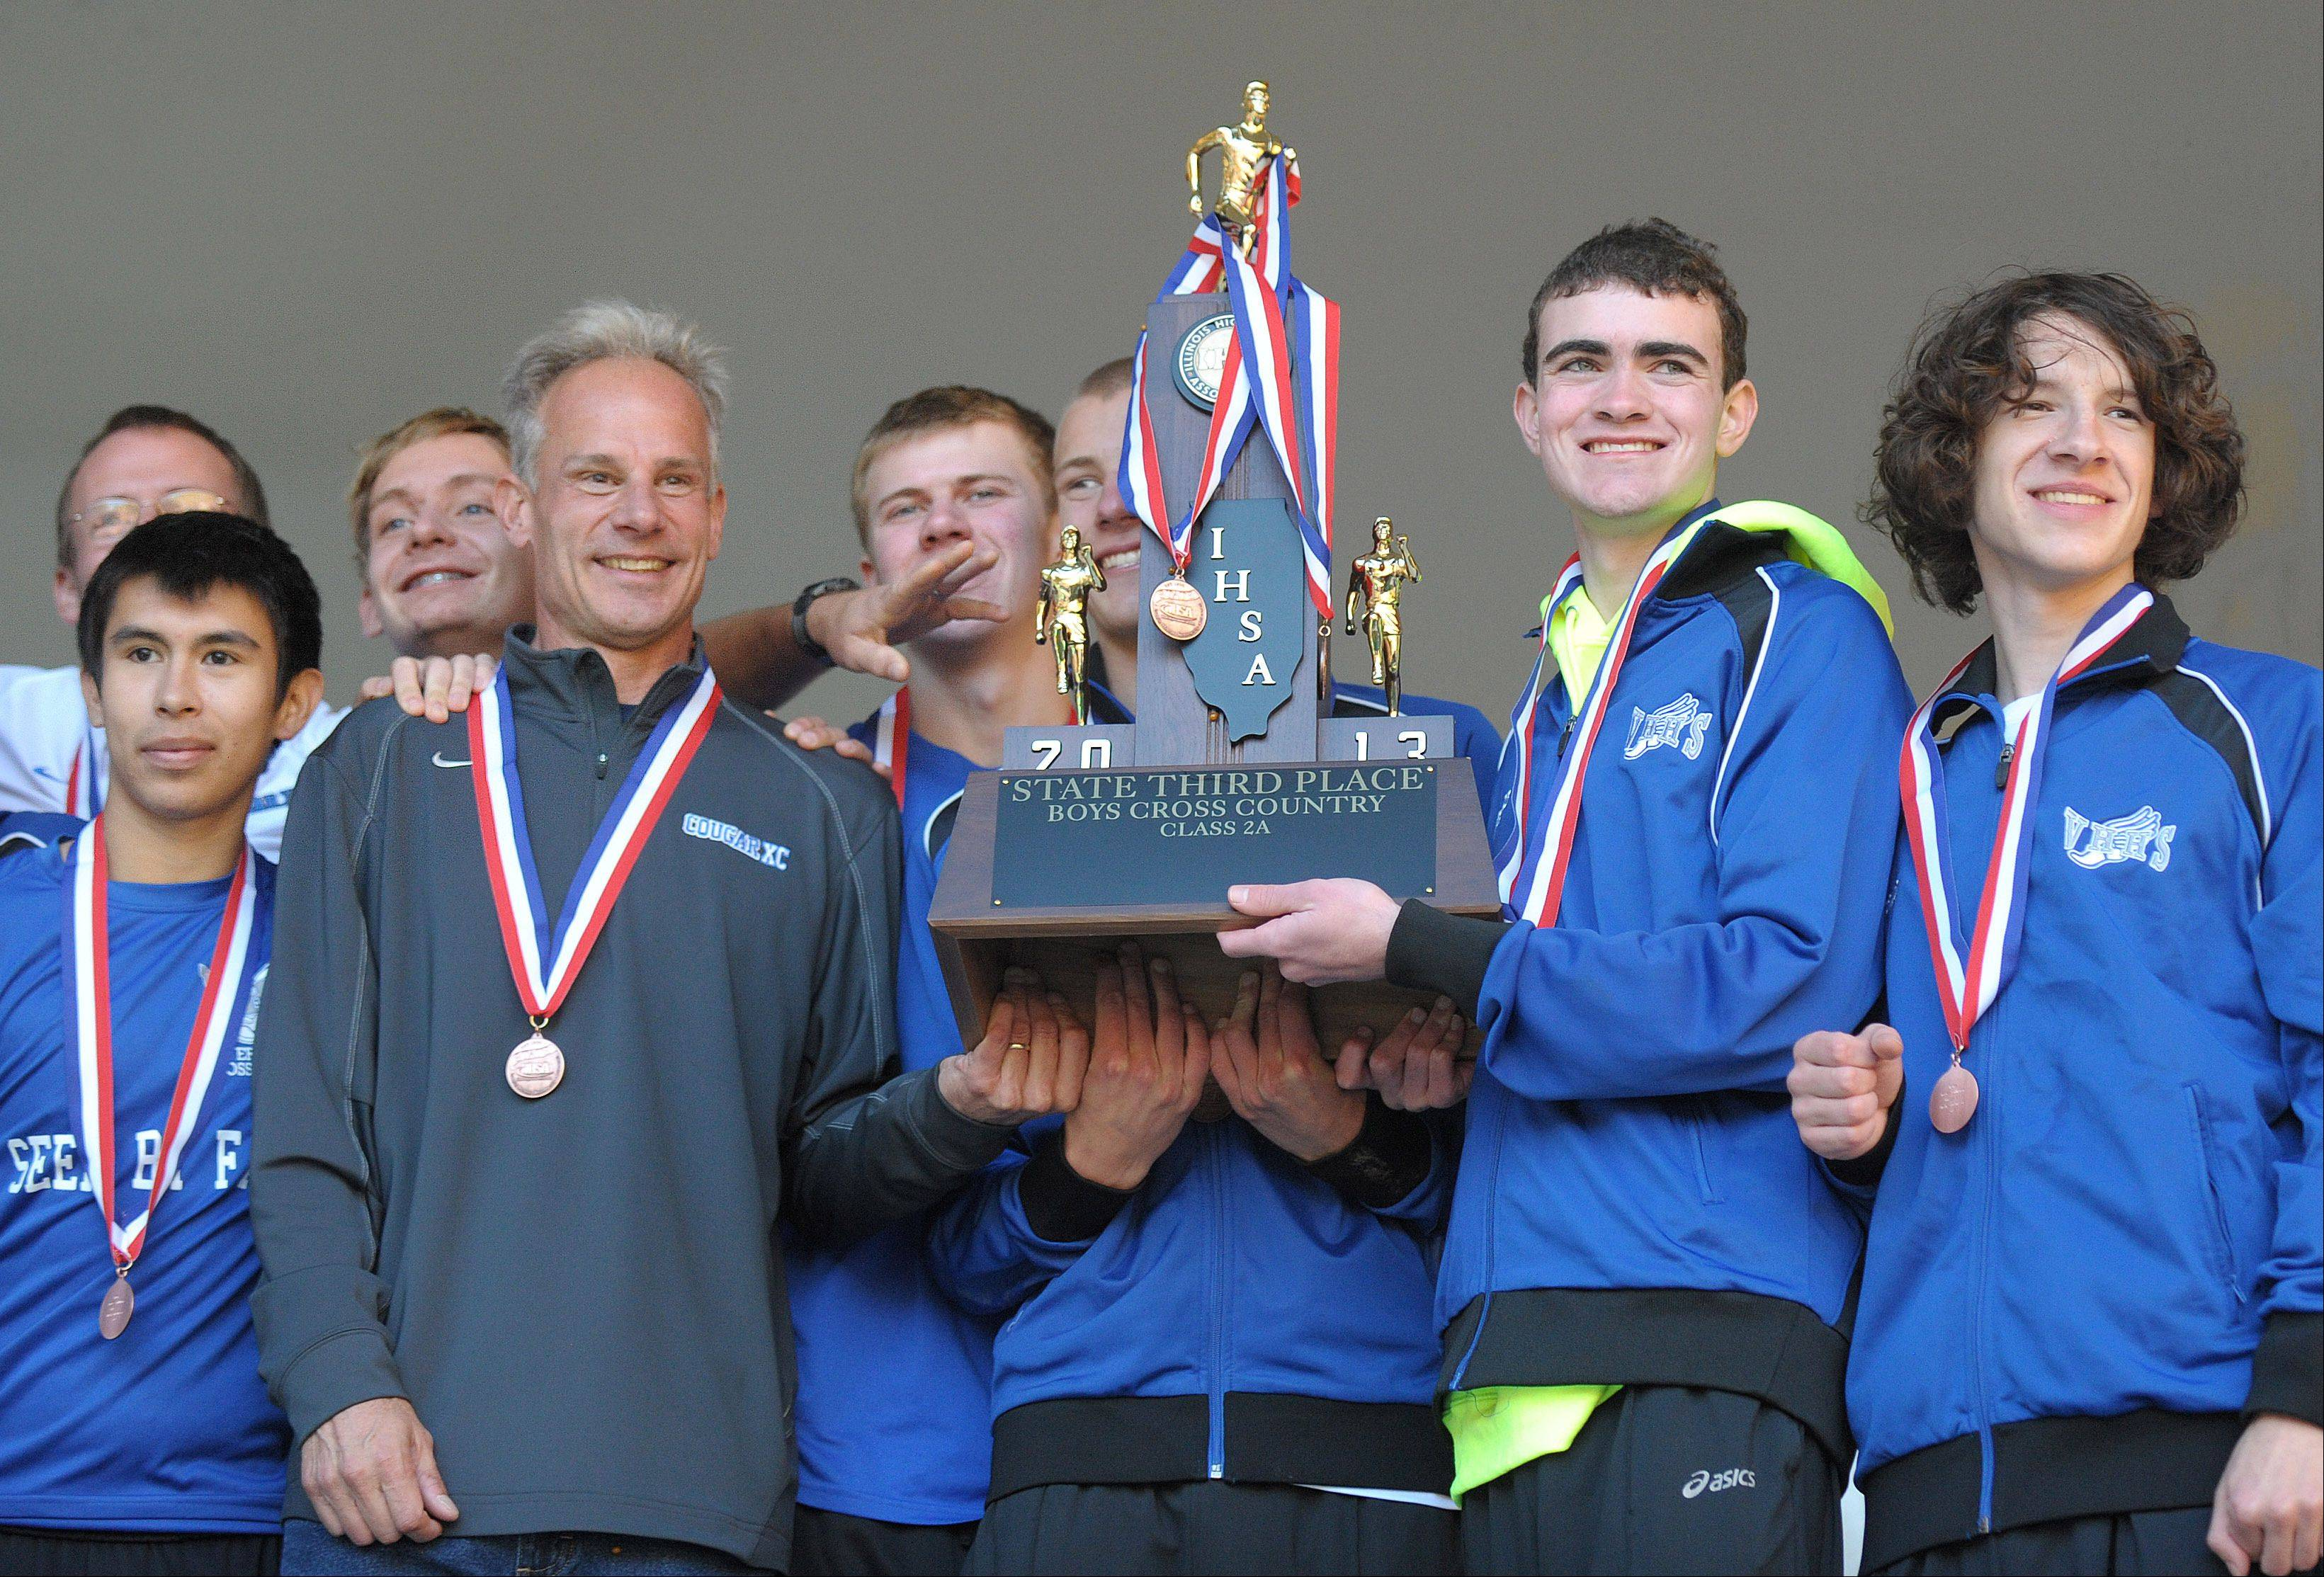 Vernon Hills claims their third place Class 2A IHSA cross country state trophy at Detweiller Park in Peoria on Saturday, November 9.